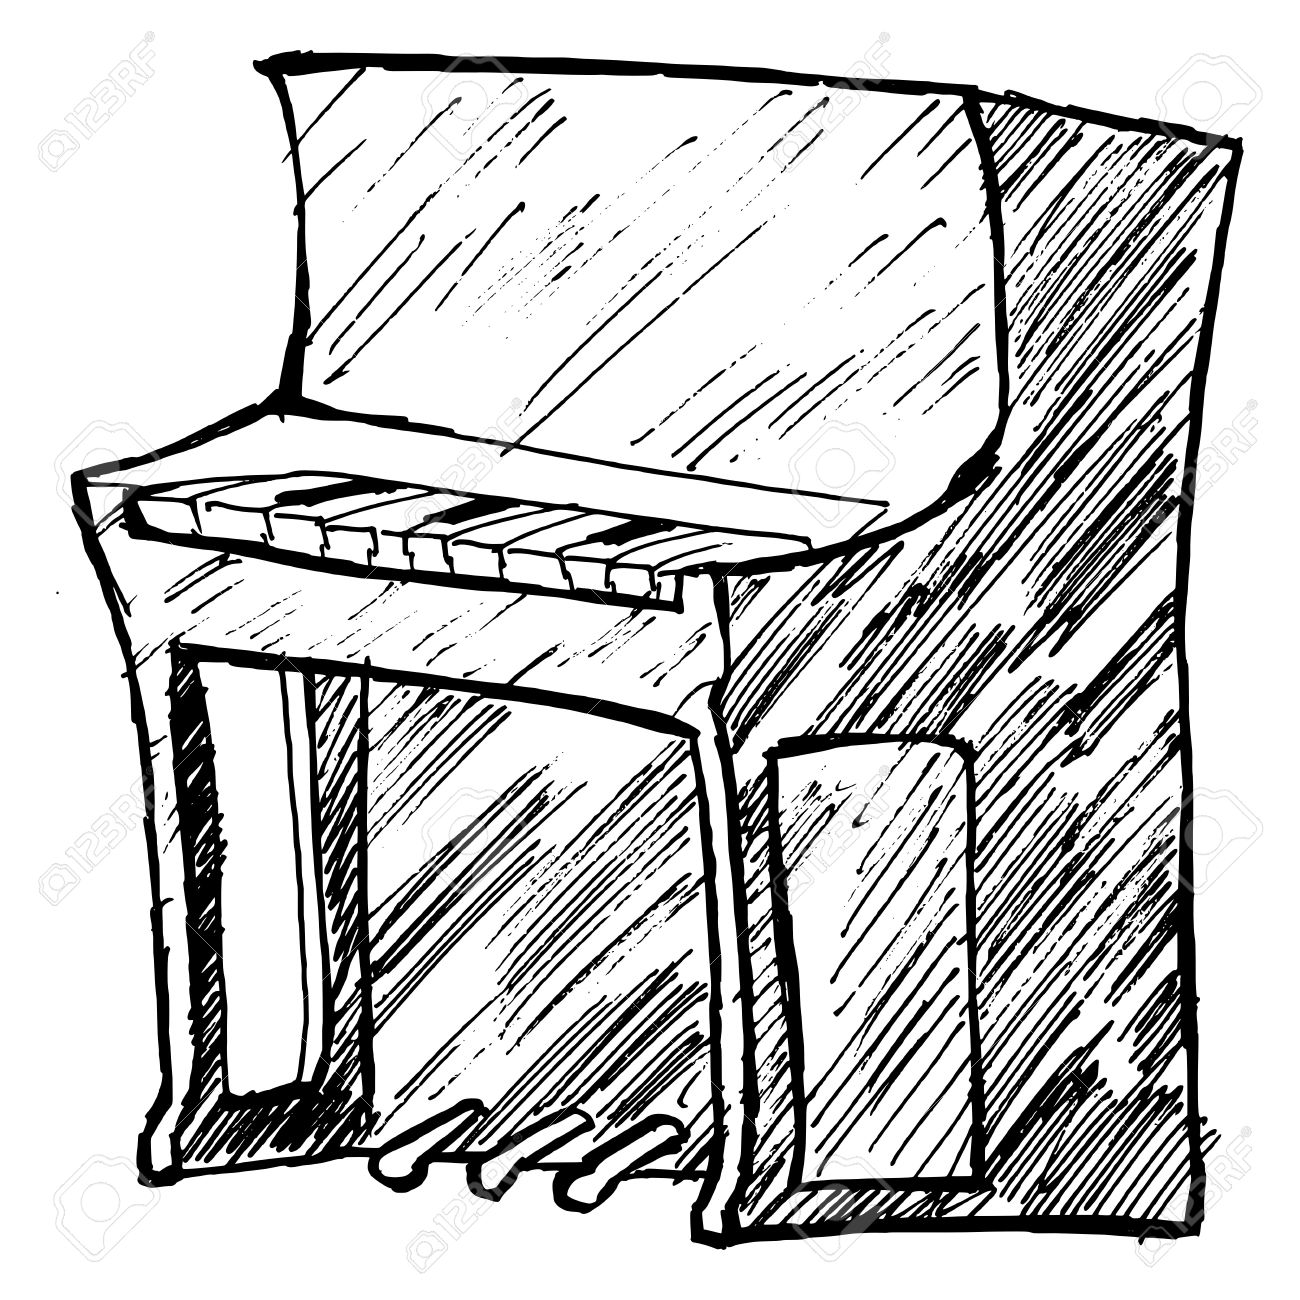 hand drawn, sketch, cartoon illustration of piano Stock Vector - 20044104